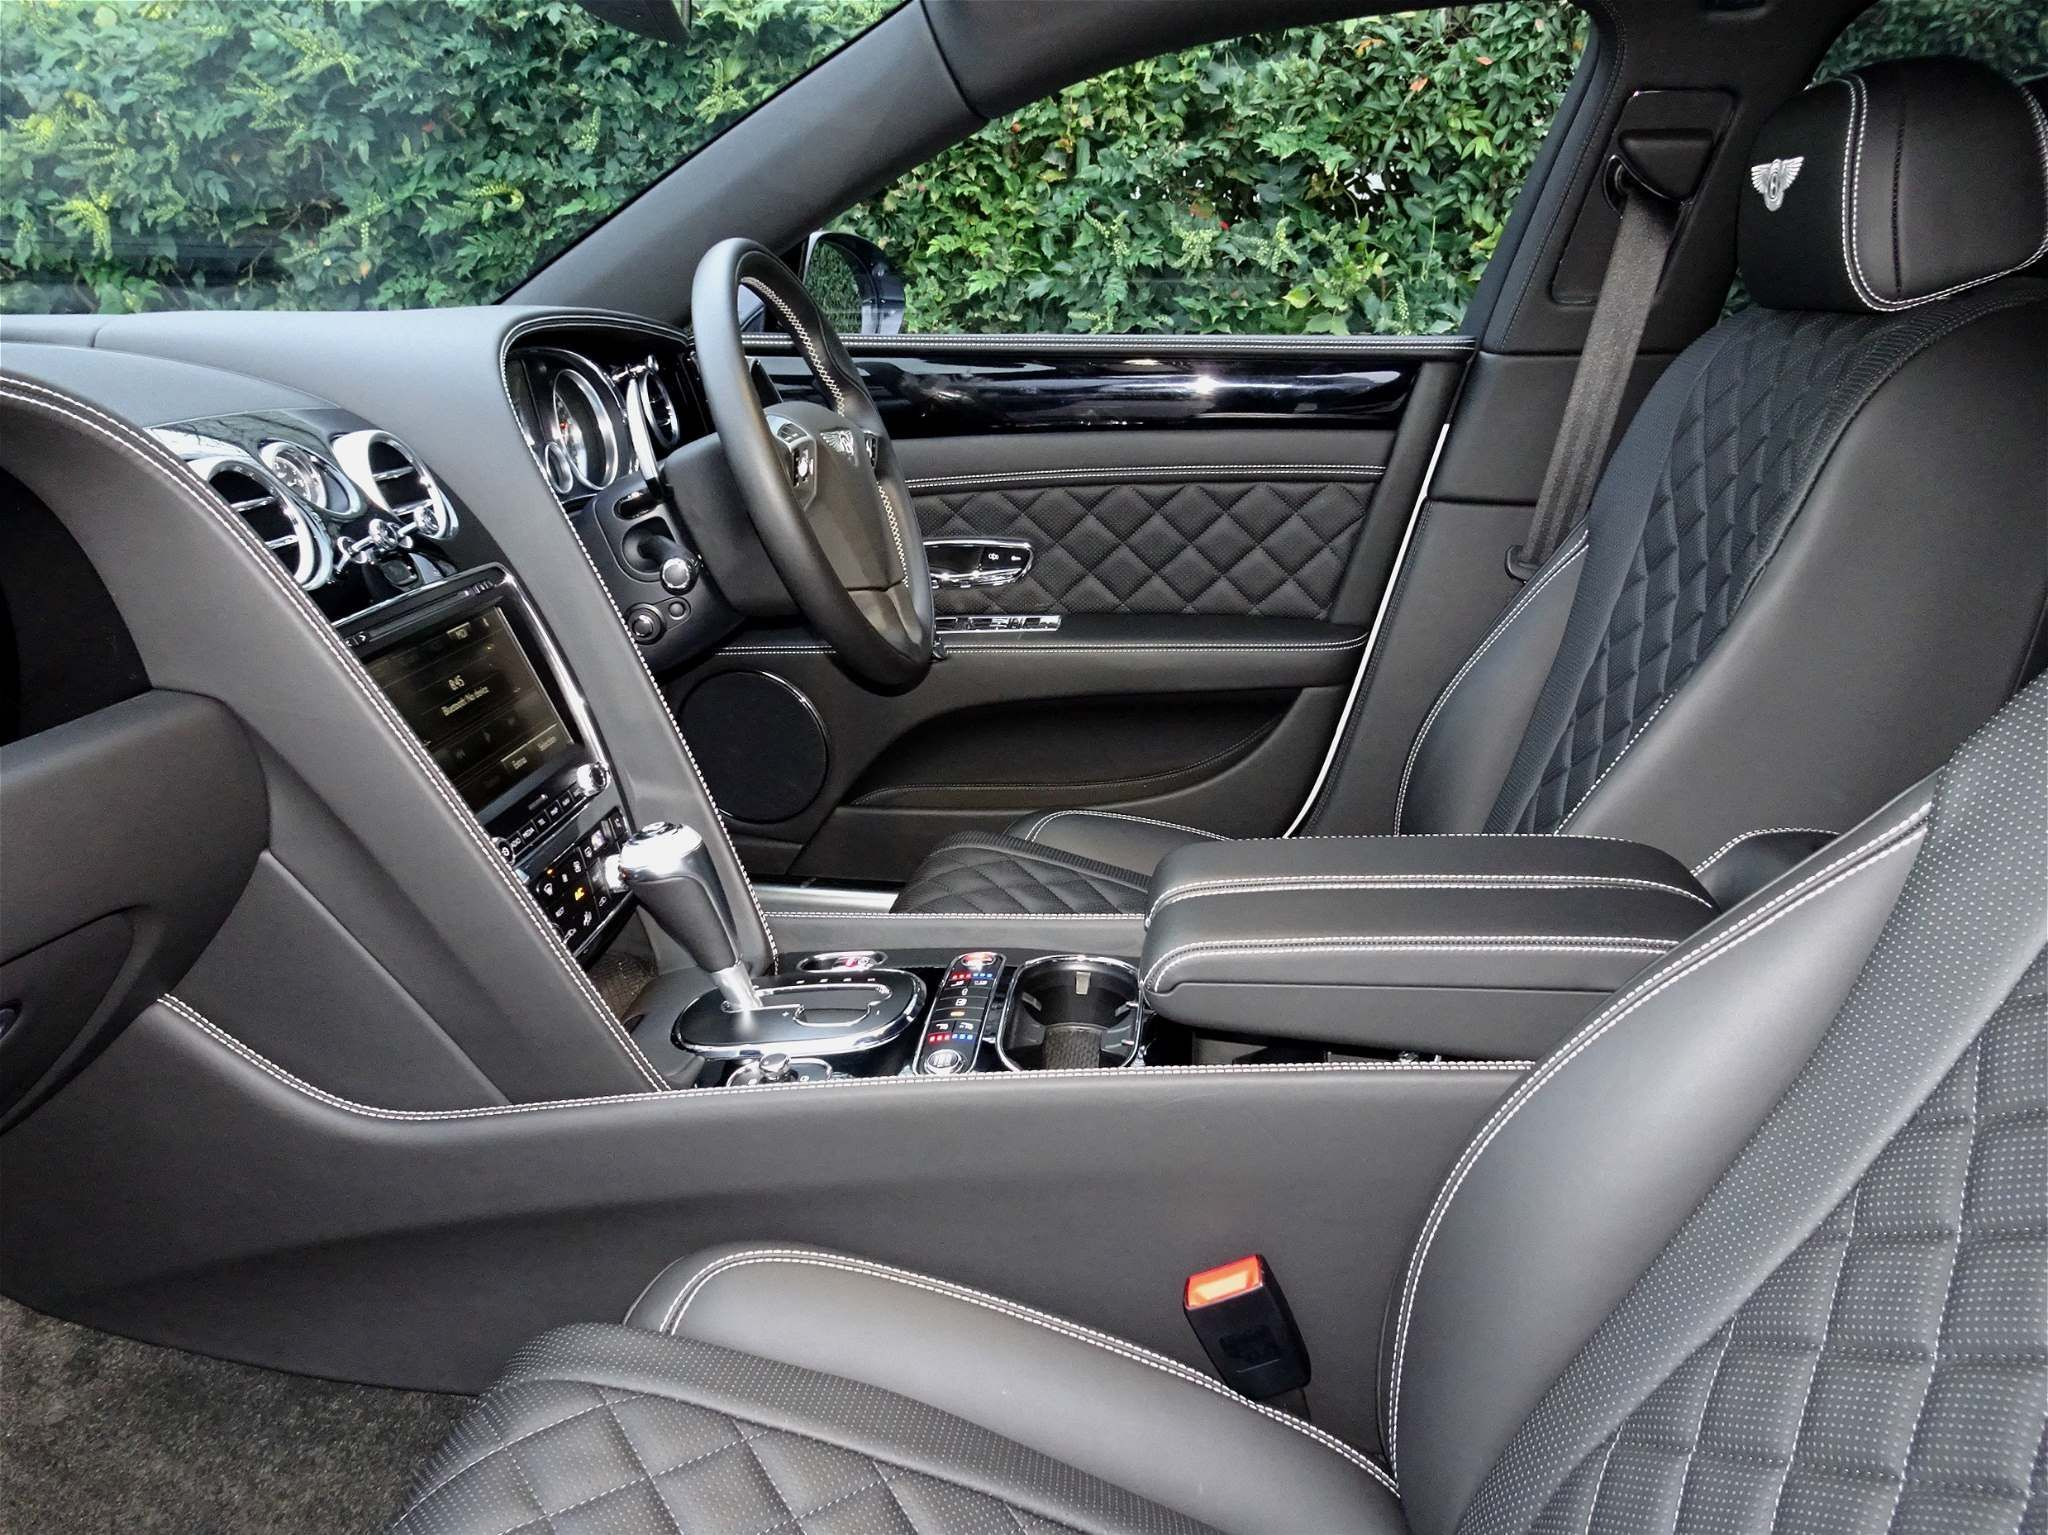 Bentley Flying Spur 4.0 V8 S Auto 4WD 4dr